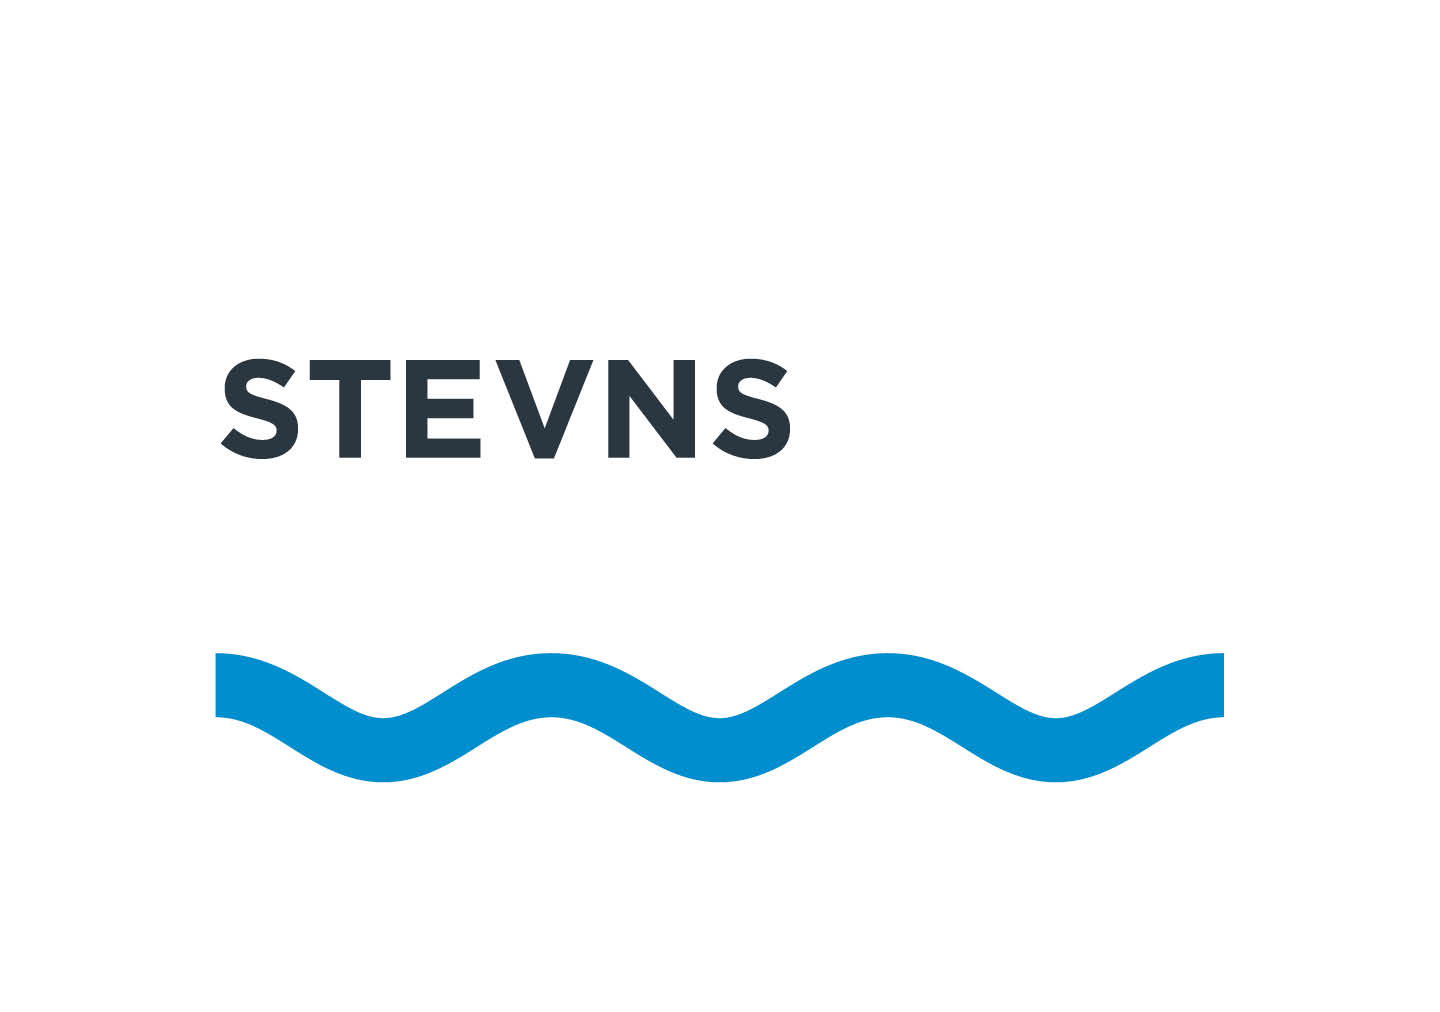 Logoanimation for Verdensarv Stevns